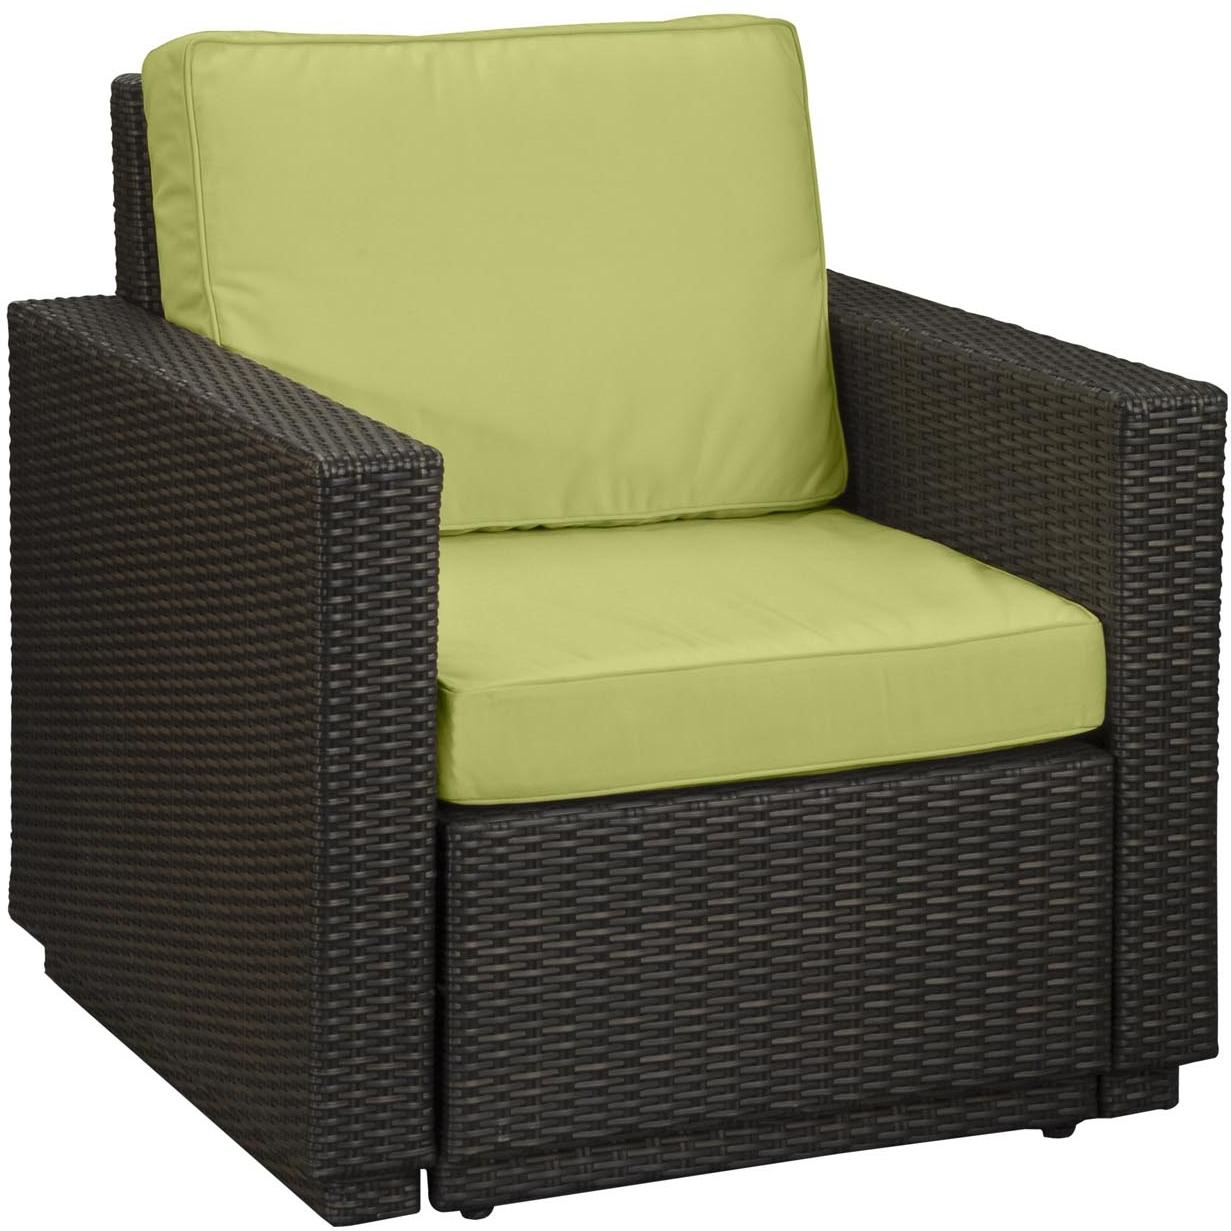 Home Styles Riviera Resin Wicker Outdoor Patio Arm Chair With Cushion - Green Apple Fabric